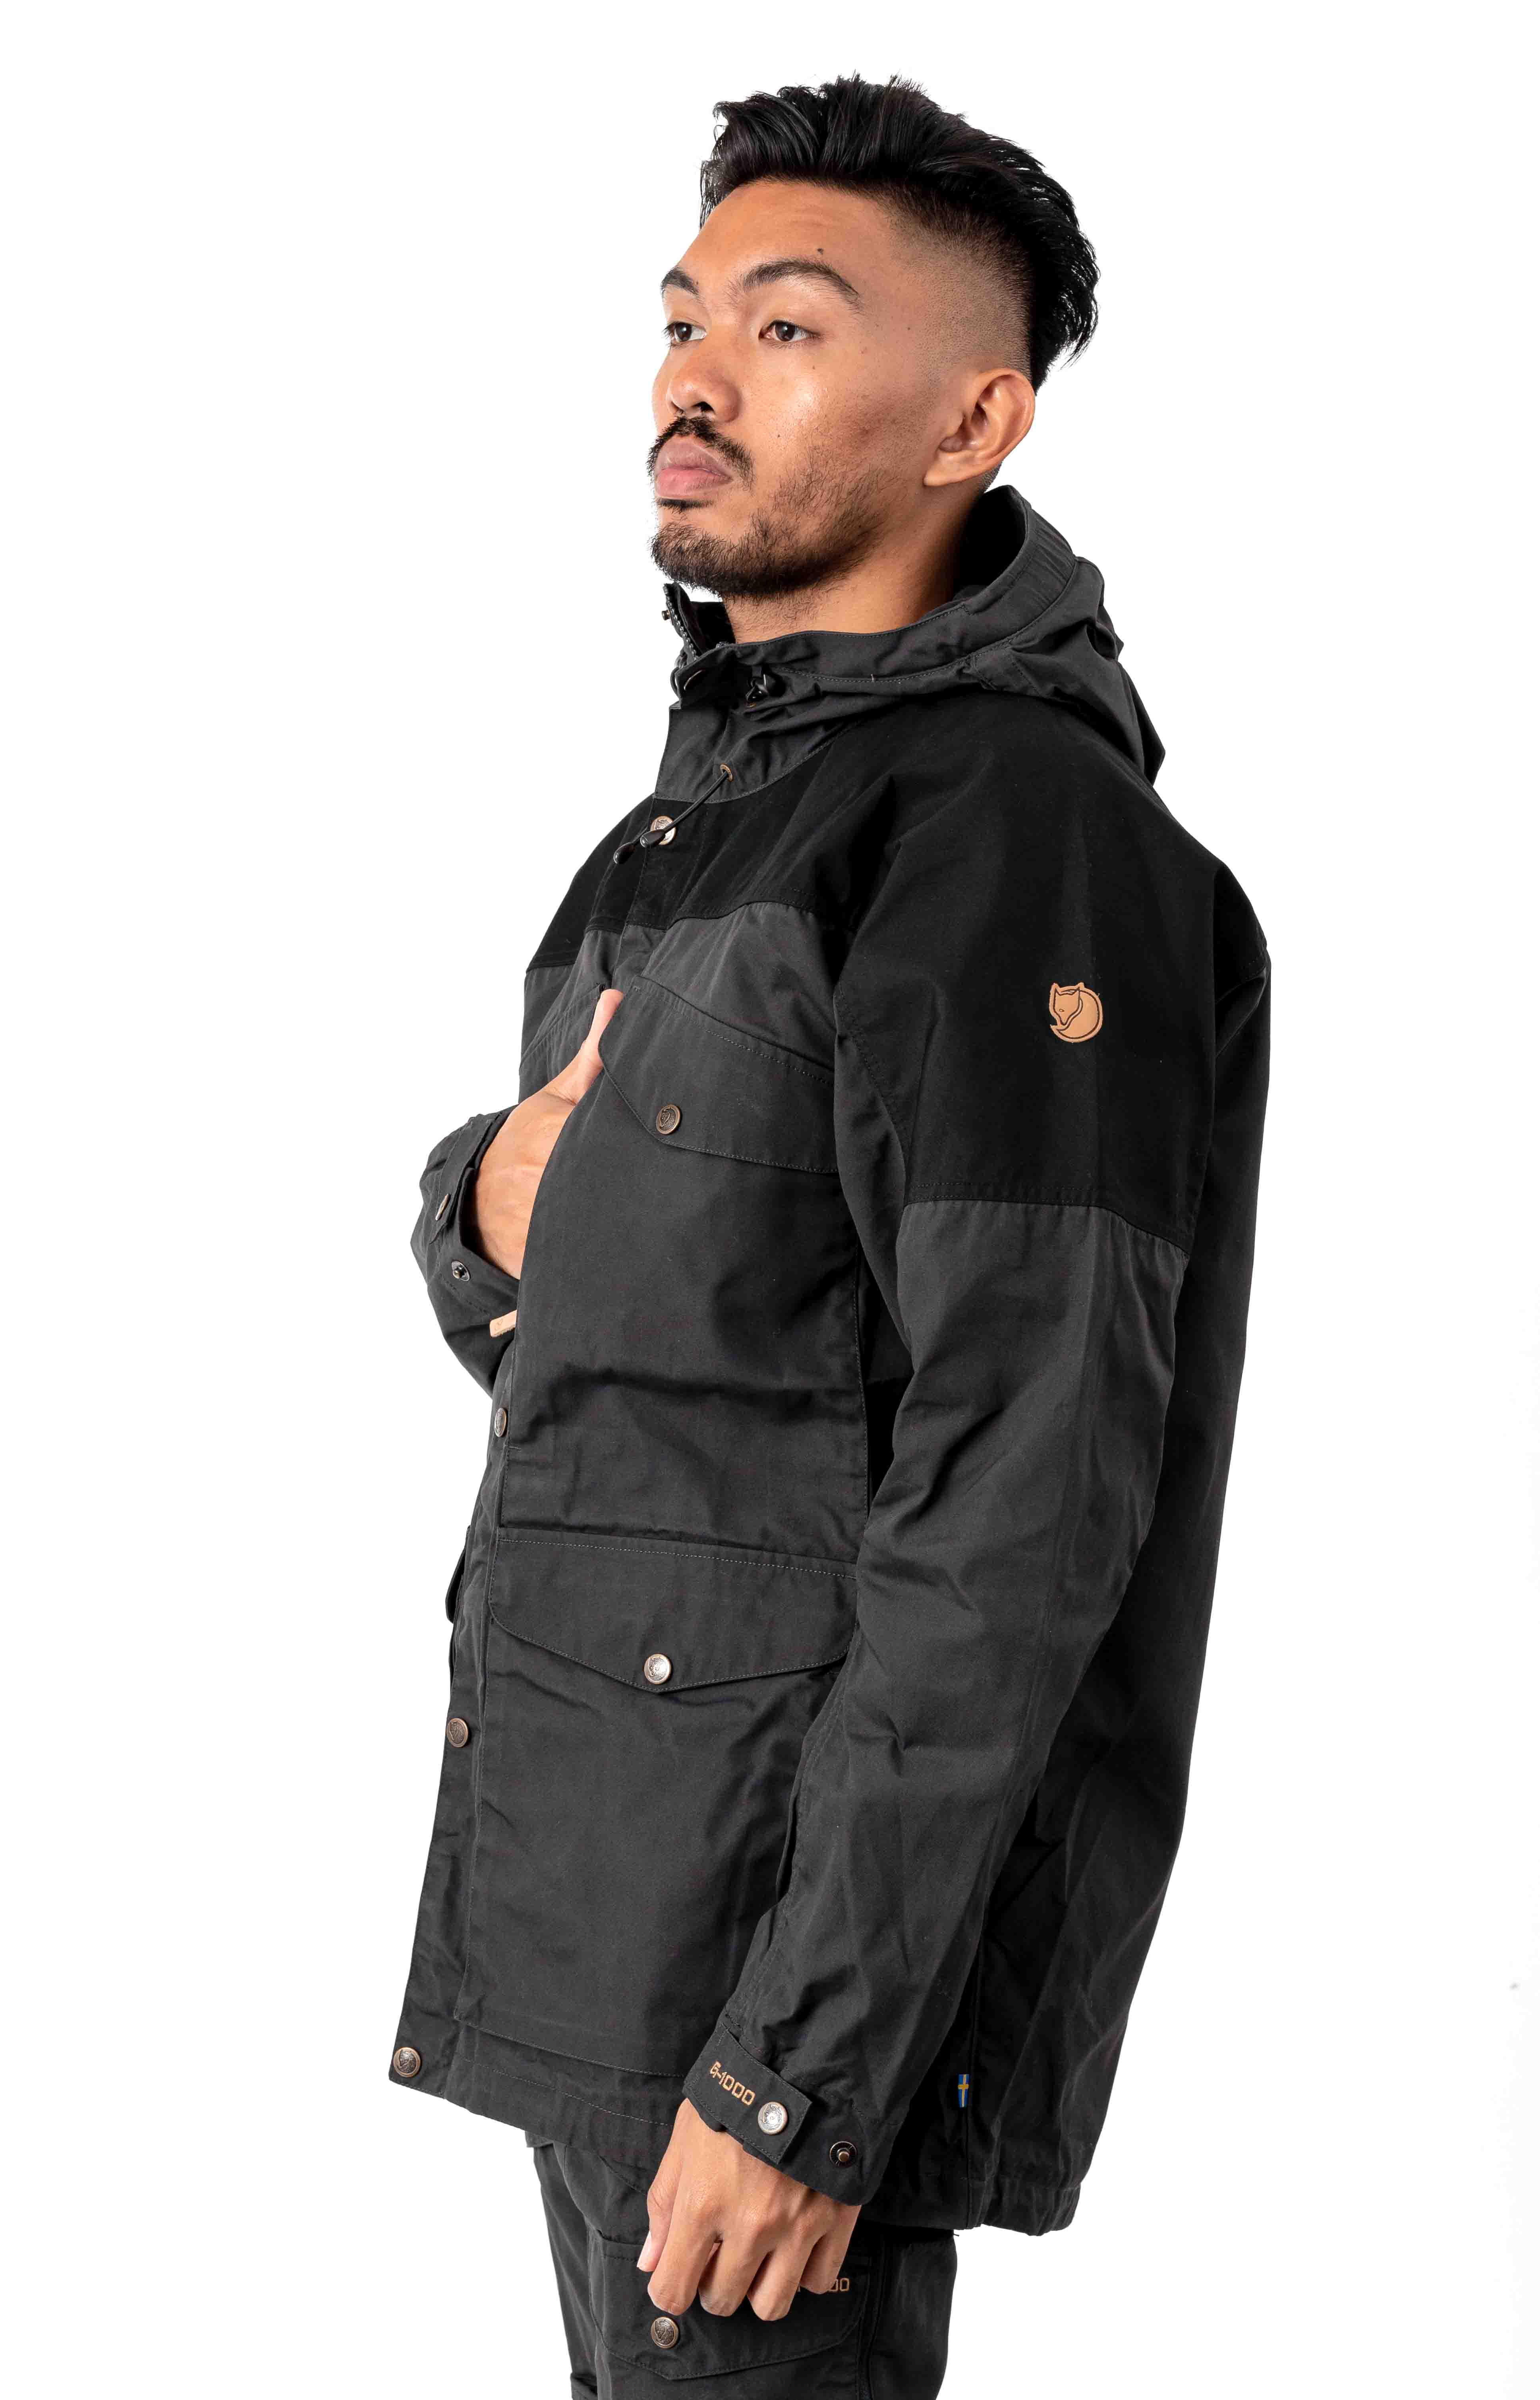 Vidda Pro Jacket - Dark Grey/Black 2